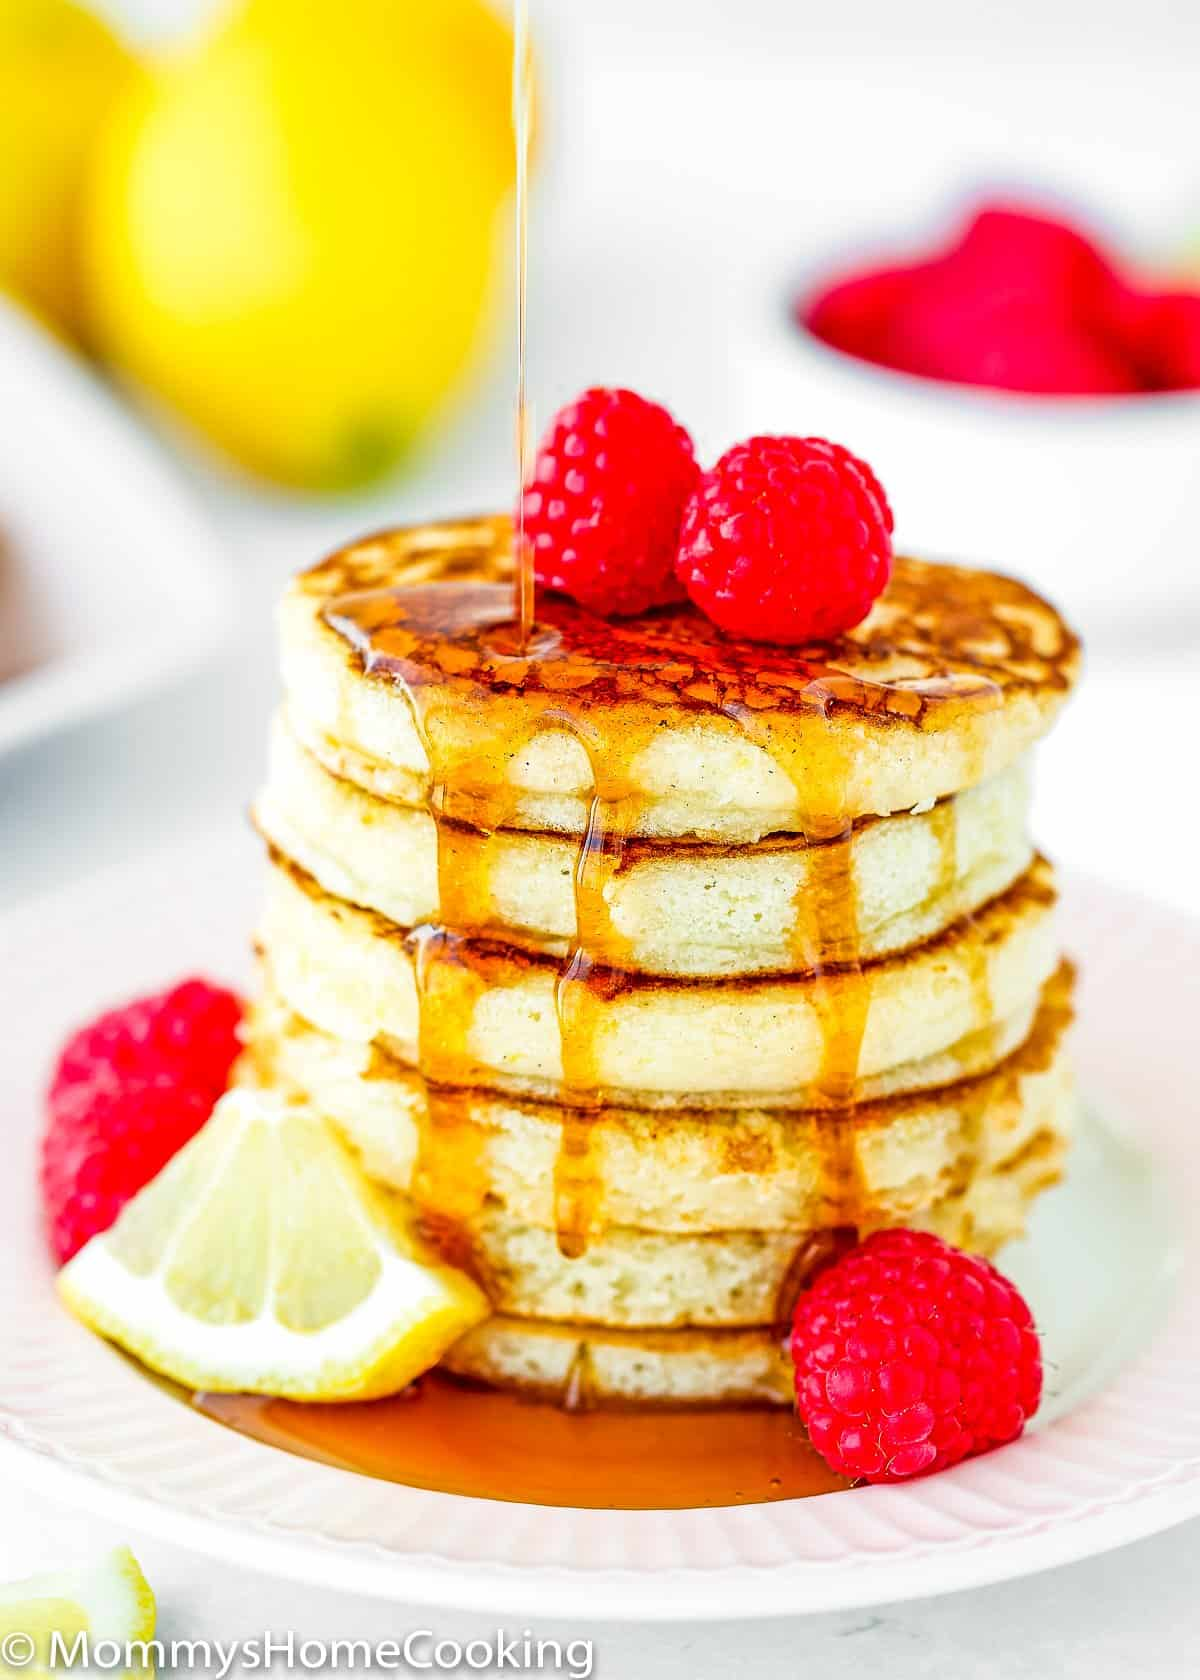 maple syrup poured onto a stack of eggless lemon ricotta pancakes.